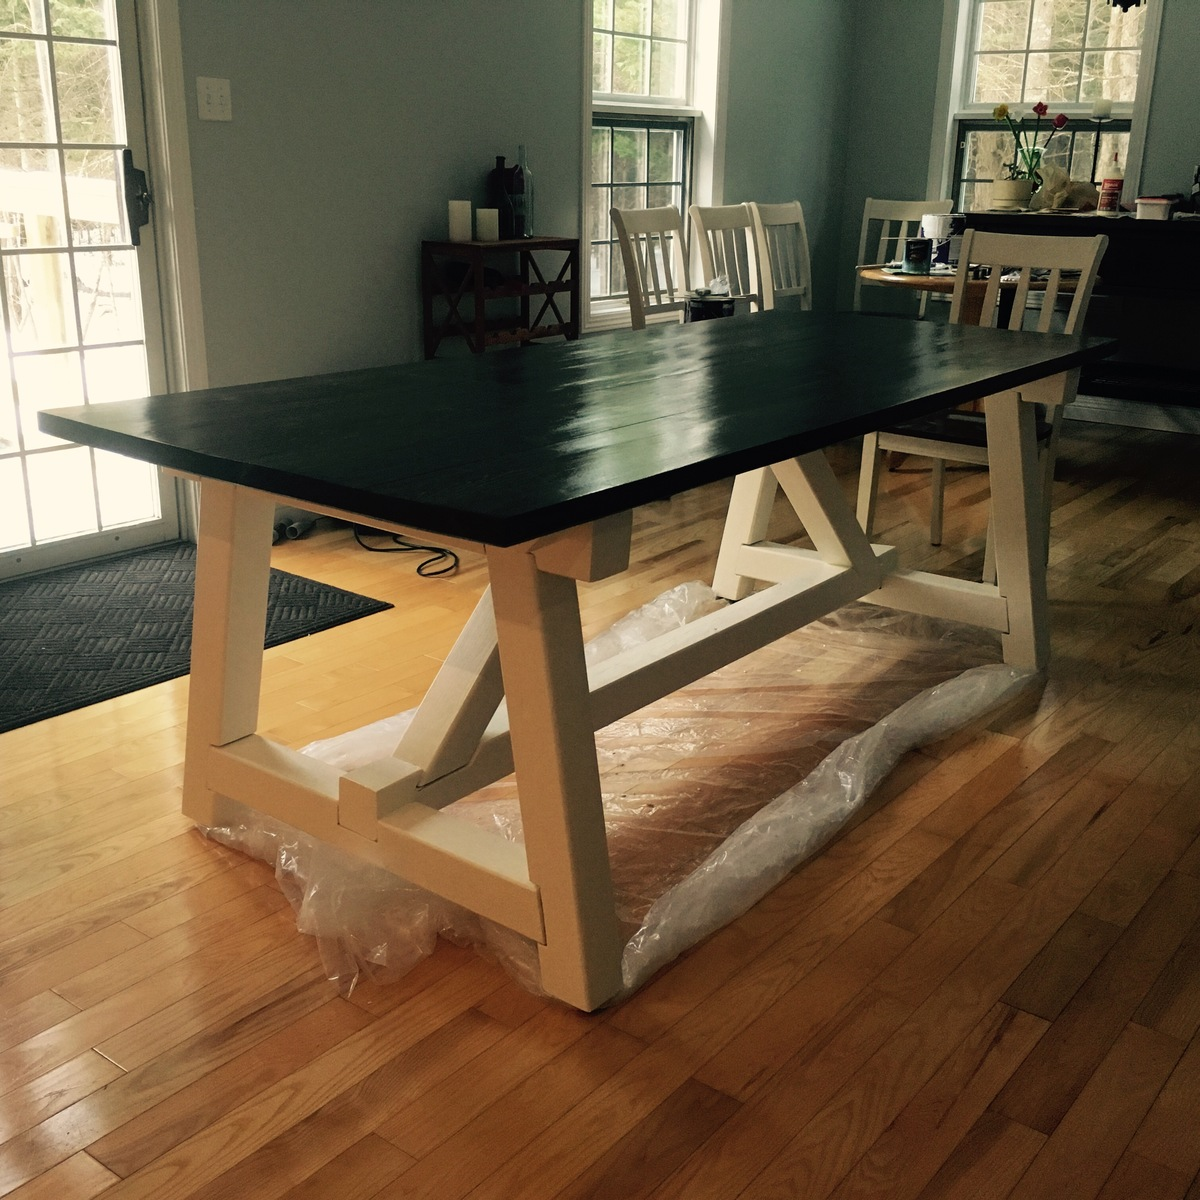 Ana white 4x4 truss harvest table diy projects for 4x4 dining table